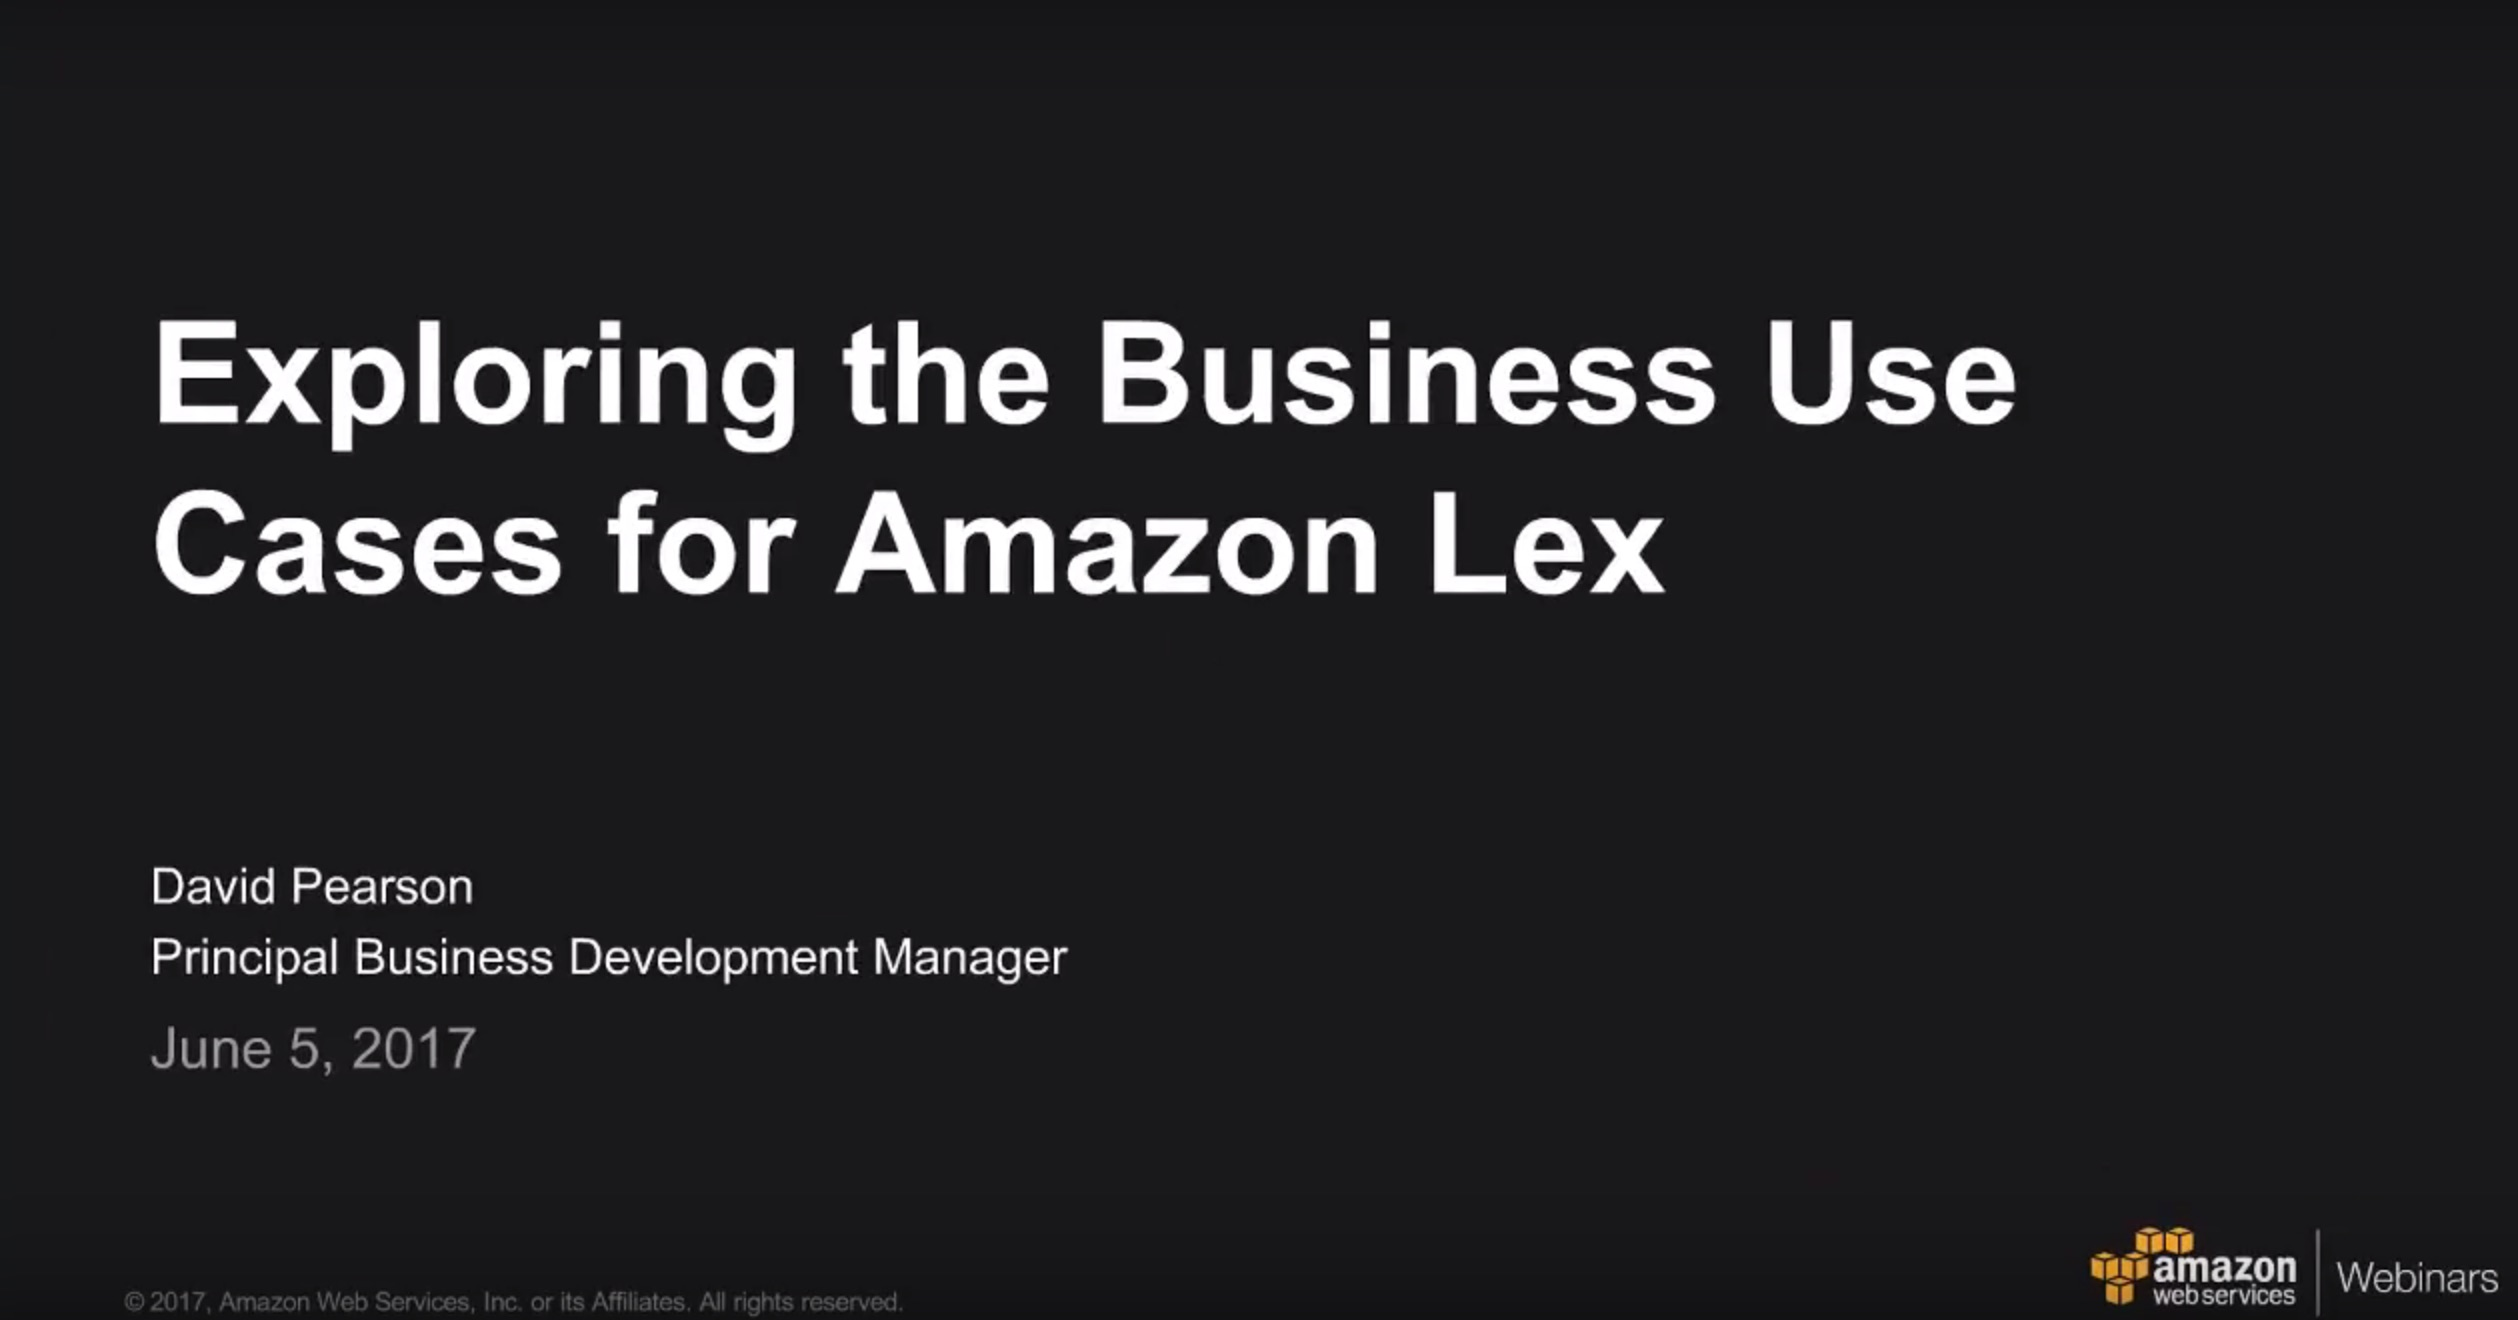 Common Business Cases for Amazon Lex